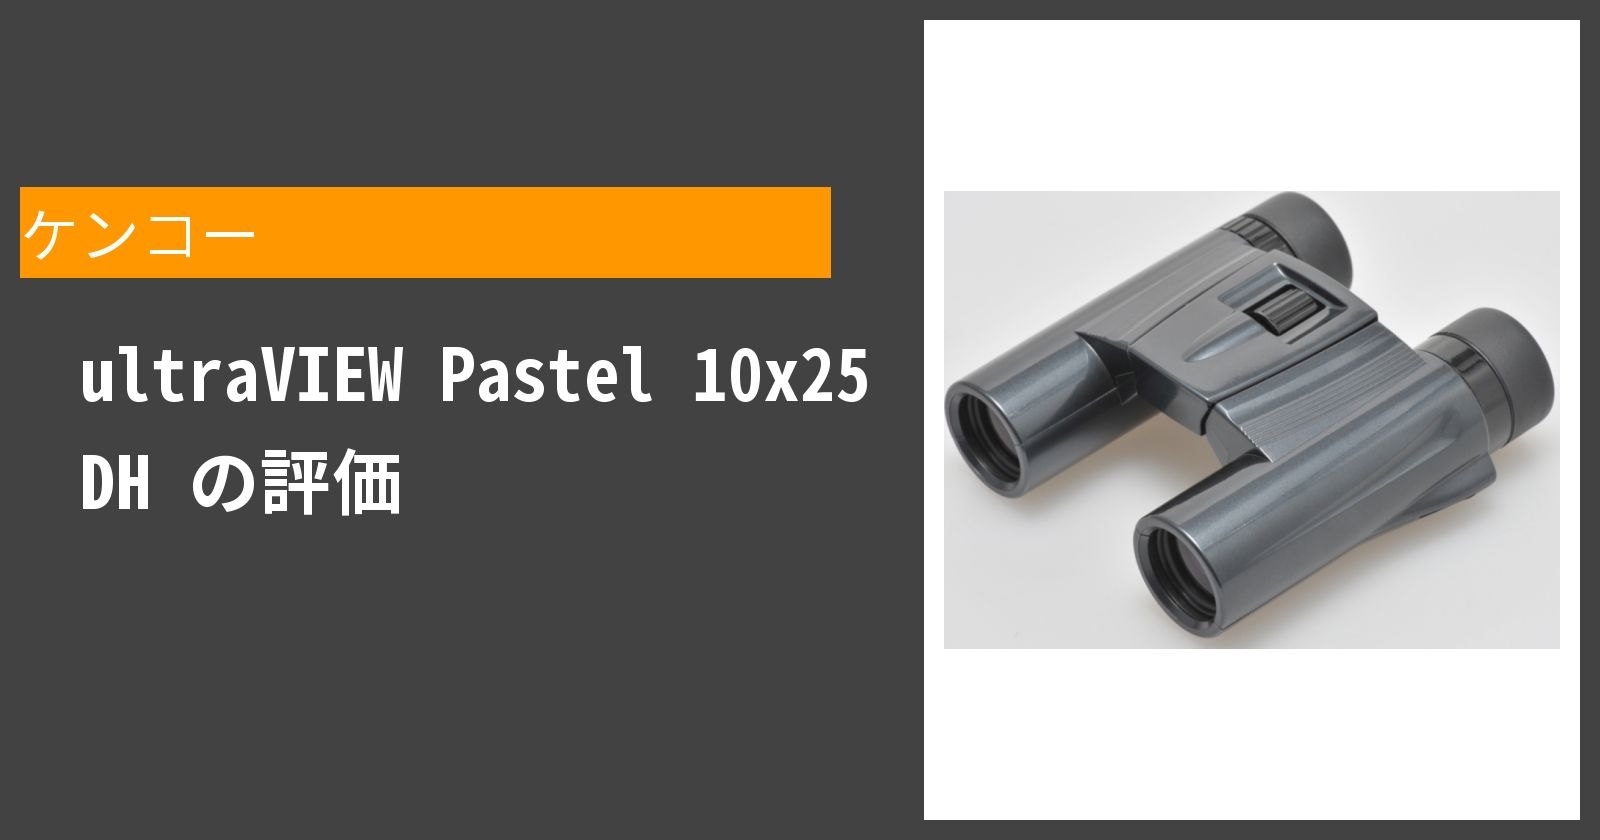 ultraVIEW Pastel 10x25 DHを徹底評価